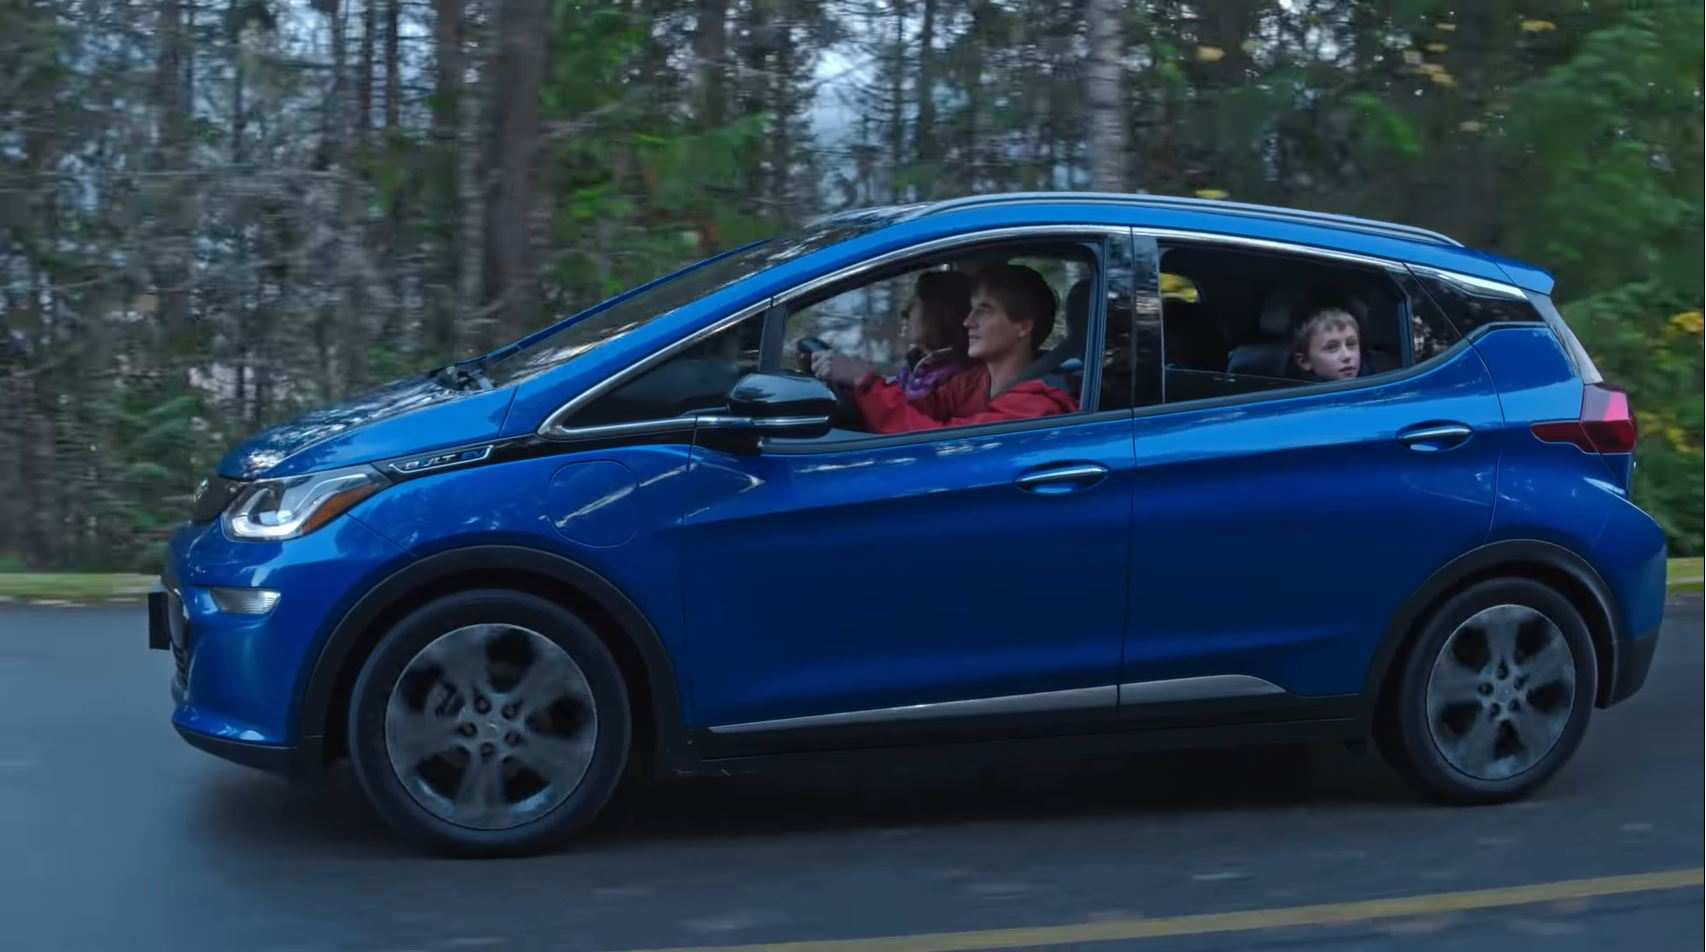 32 Gallery of 2019 Chevrolet Bolt Ev History by 2019 Chevrolet Bolt Ev